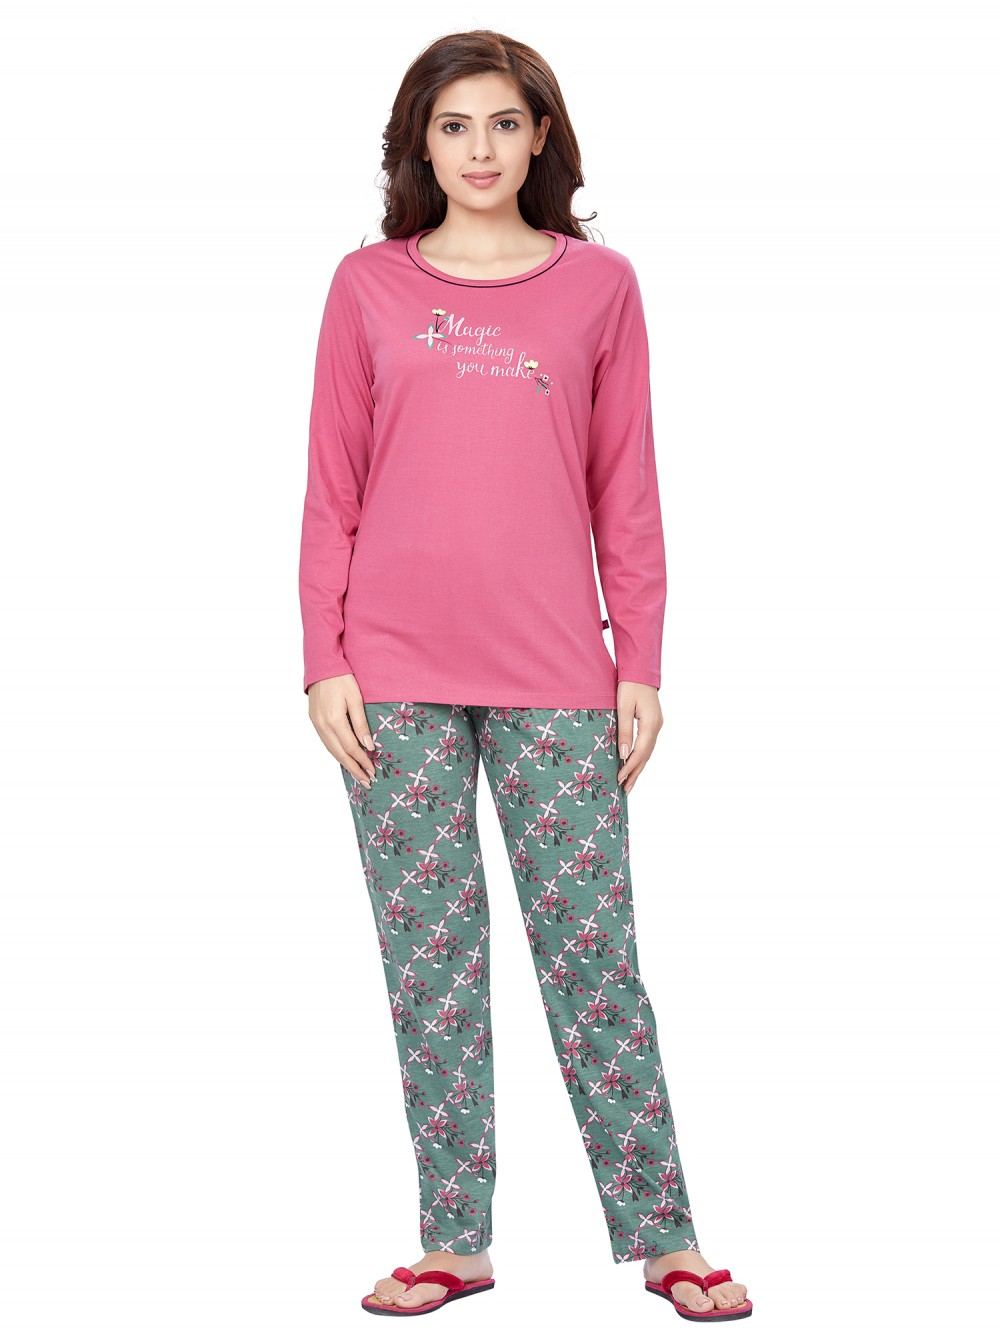 July Nightwear for women Essentials T- Shirt   Pyjama -PC709L